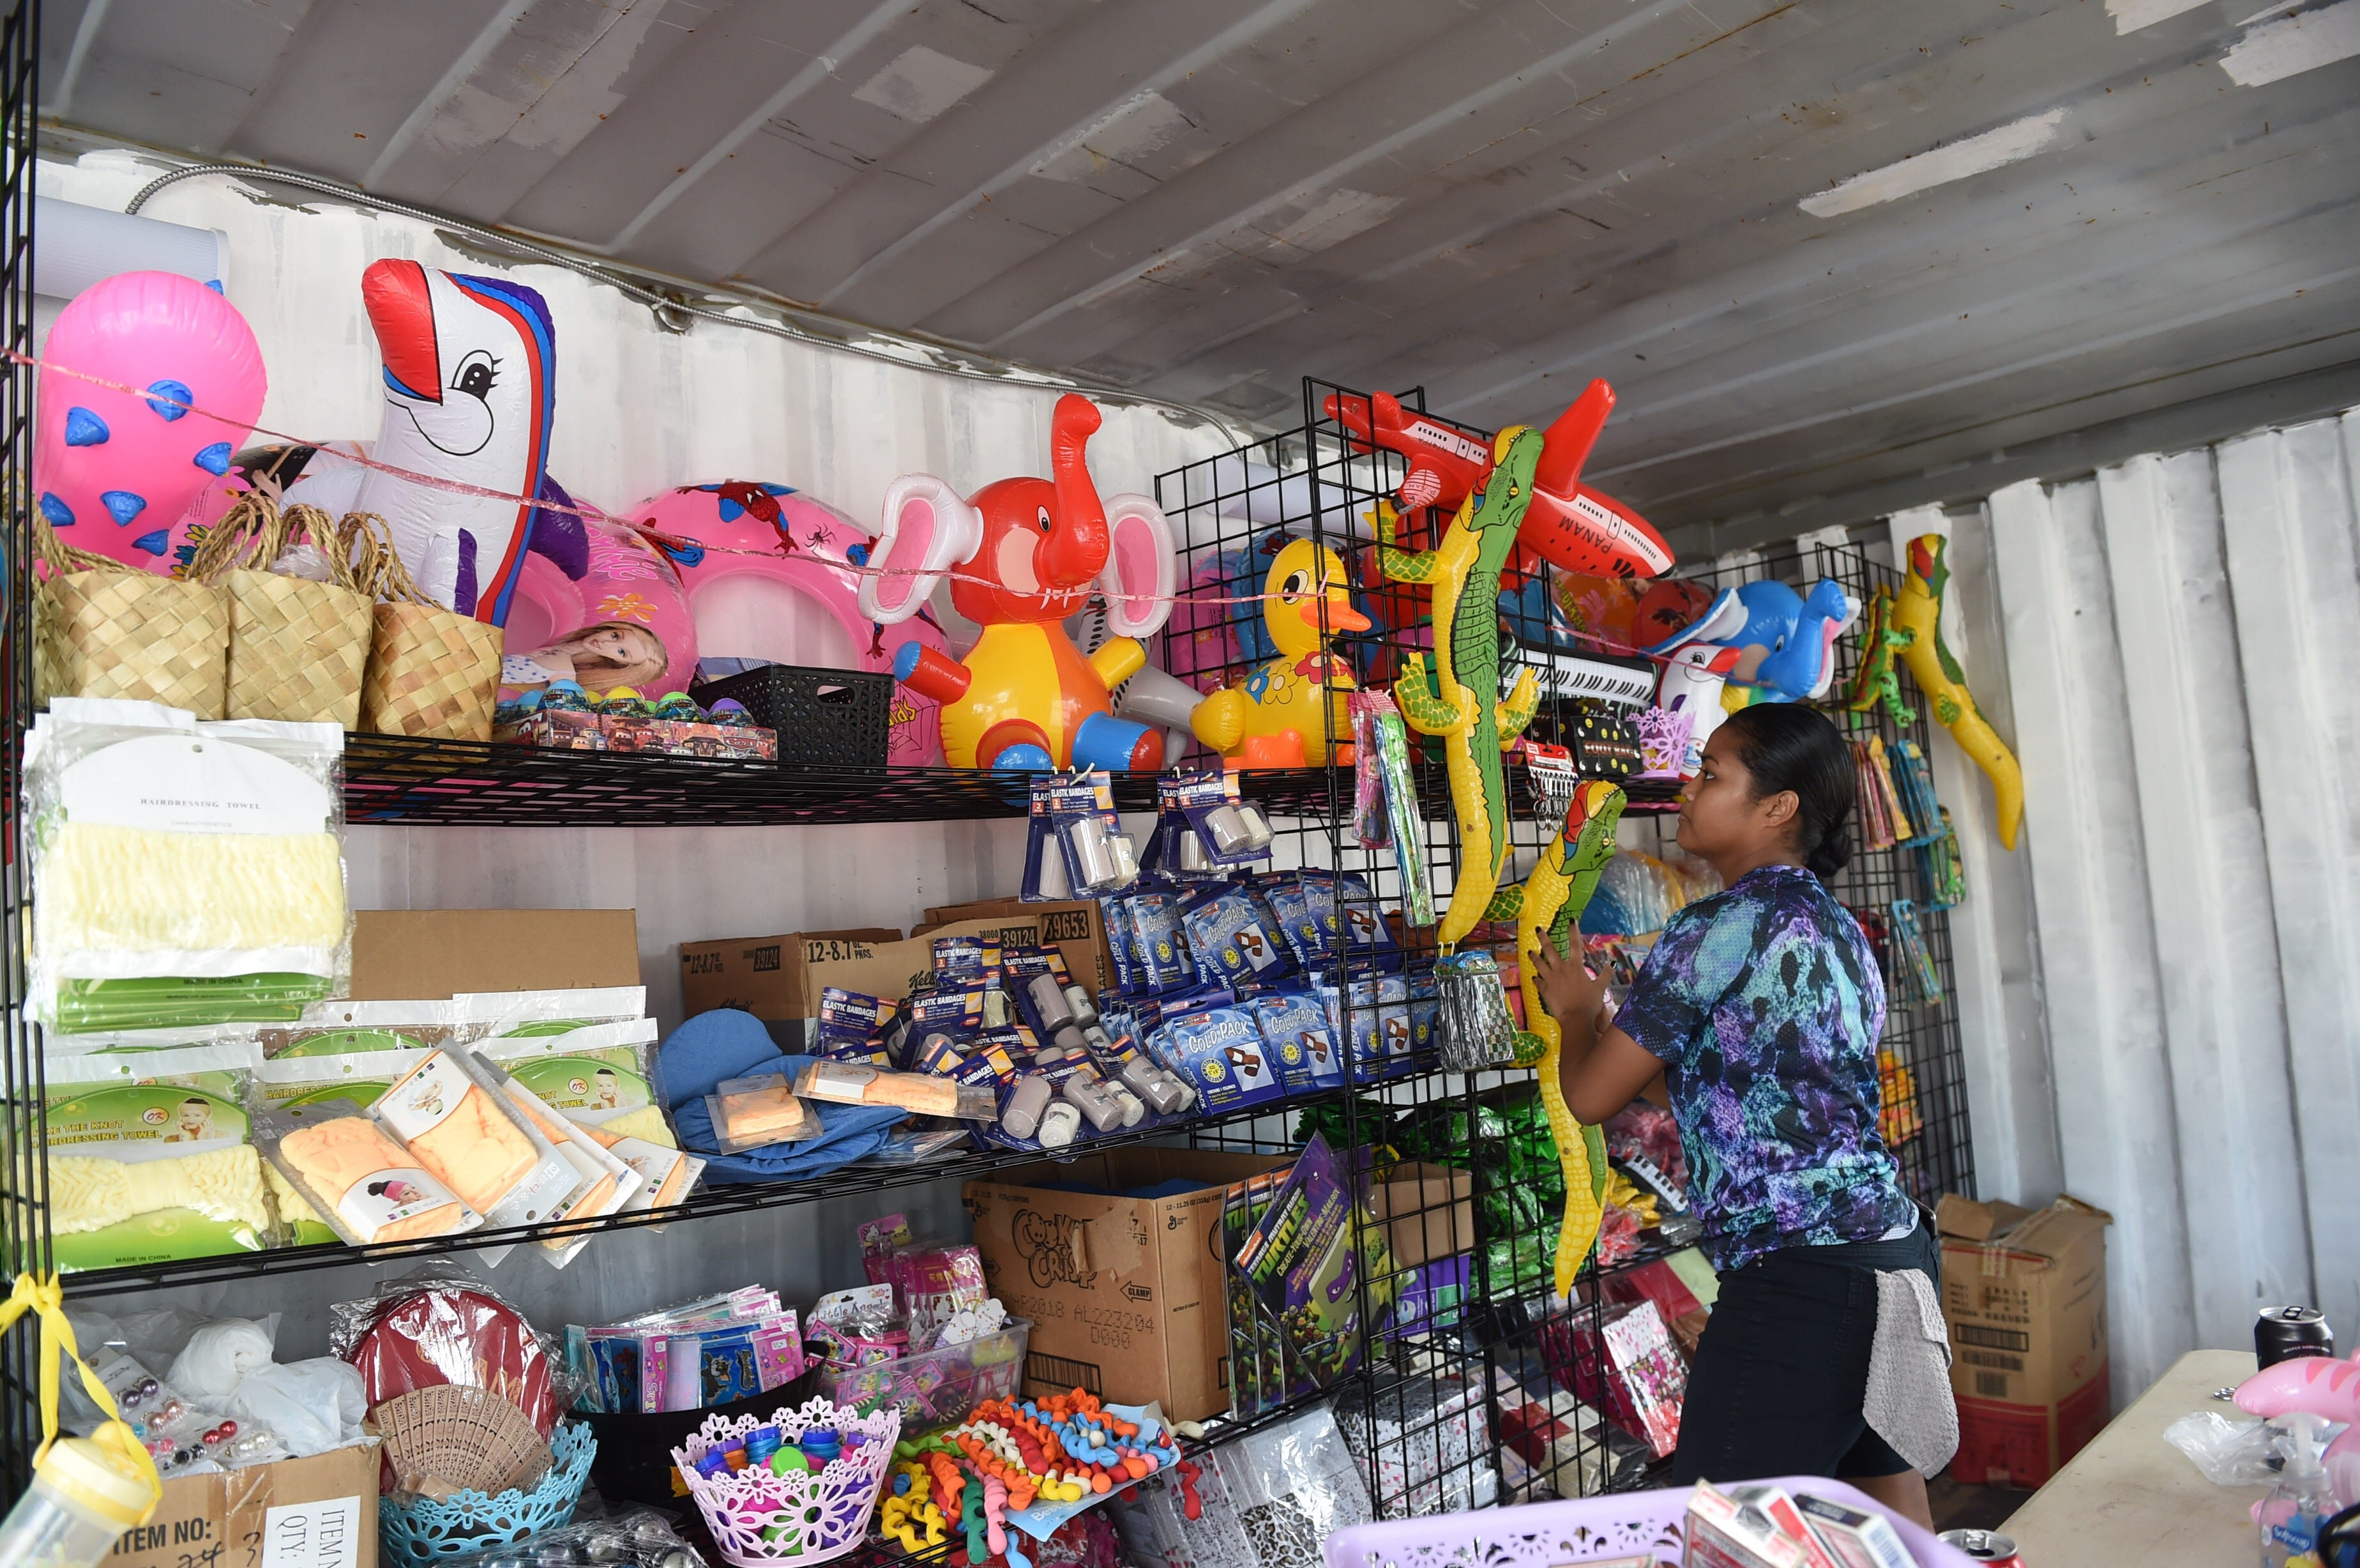 """Volunteer Cassandra Towai organizes prizes at the """"Spin-to-win"""" game booth in preparation for the opening of the 75th Liberation Carnival at Paseo de Susana Park in Hagåtña in this June 9, 2019, file photo. An audit of the 75th Guam Island Fair and Liberation Day Carnival found it didn't comply with Guam procurement rules and regulations."""